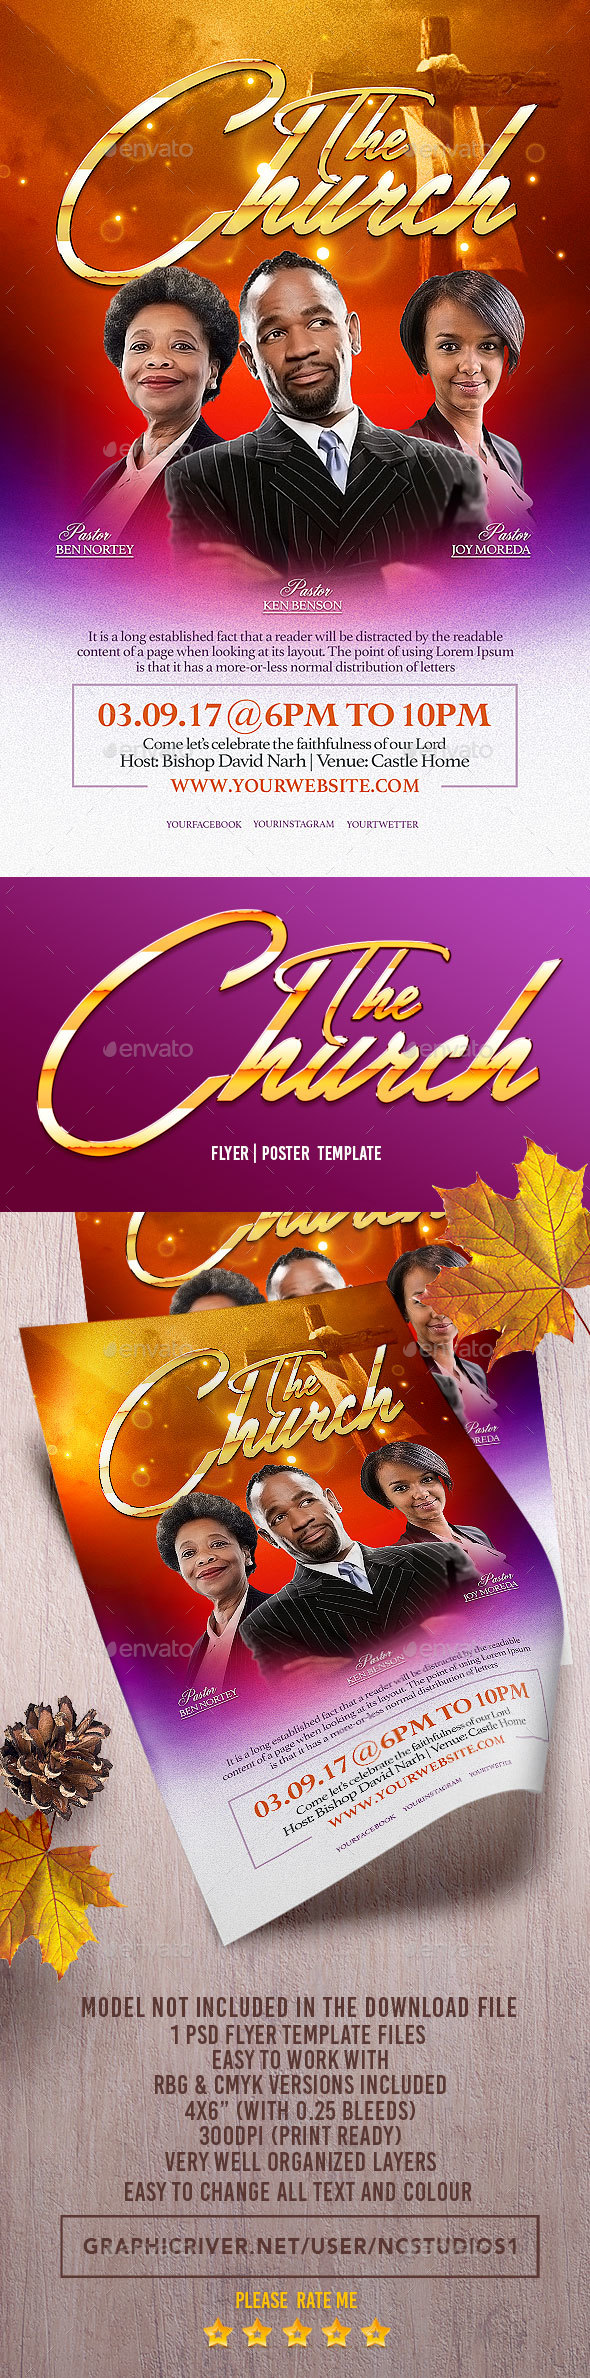 The Church Flyer Template